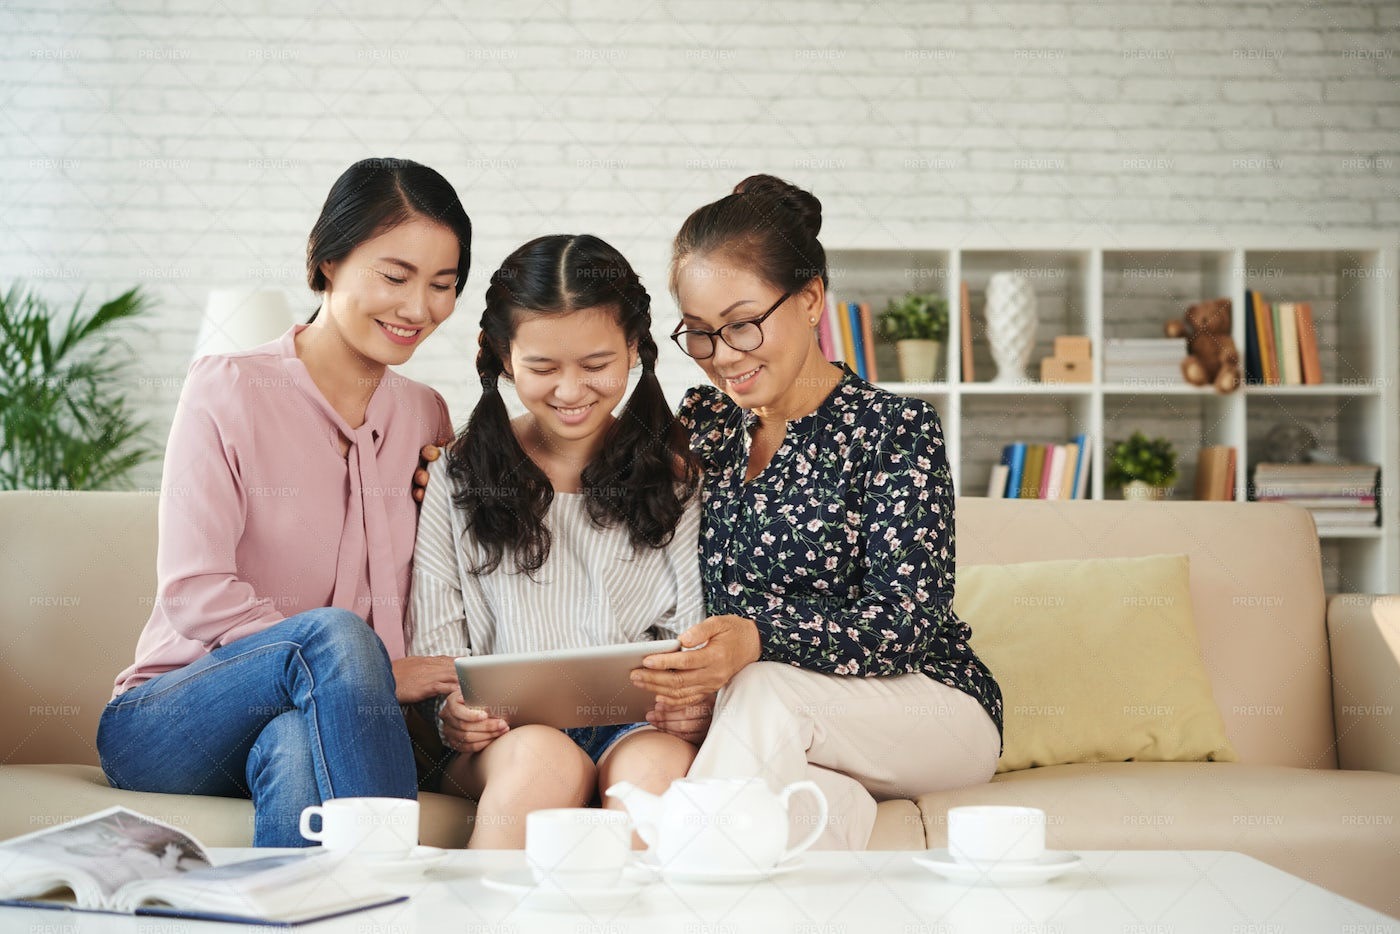 Family With Digital Tablet: Stock Photos